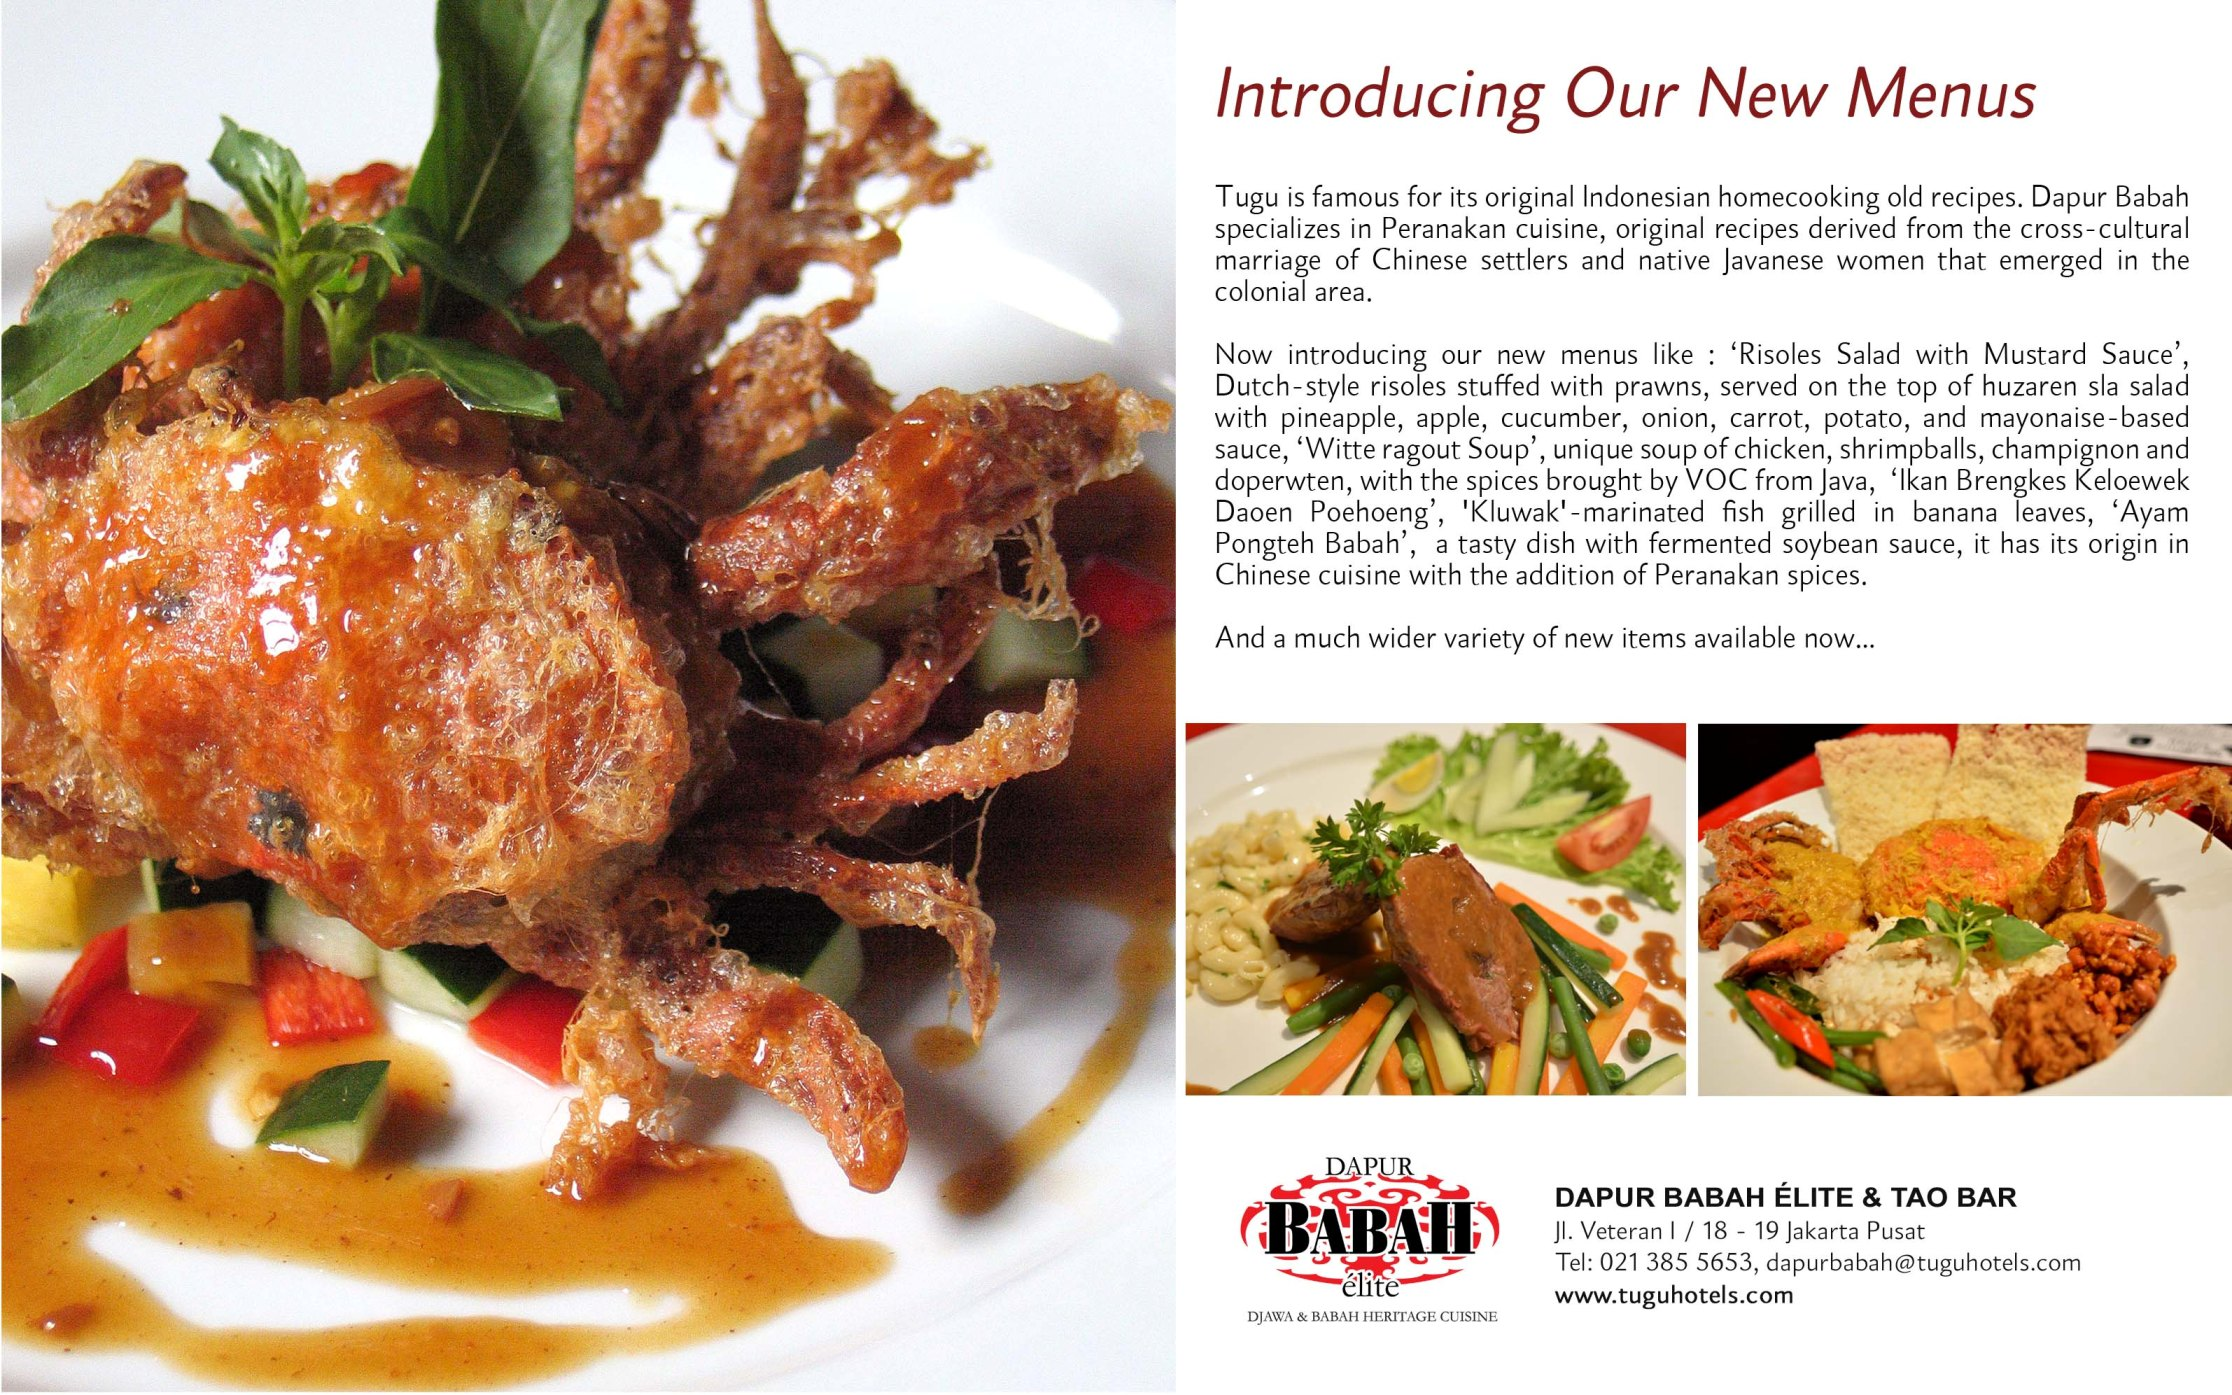 new menu from dapur babah restaurant 2015